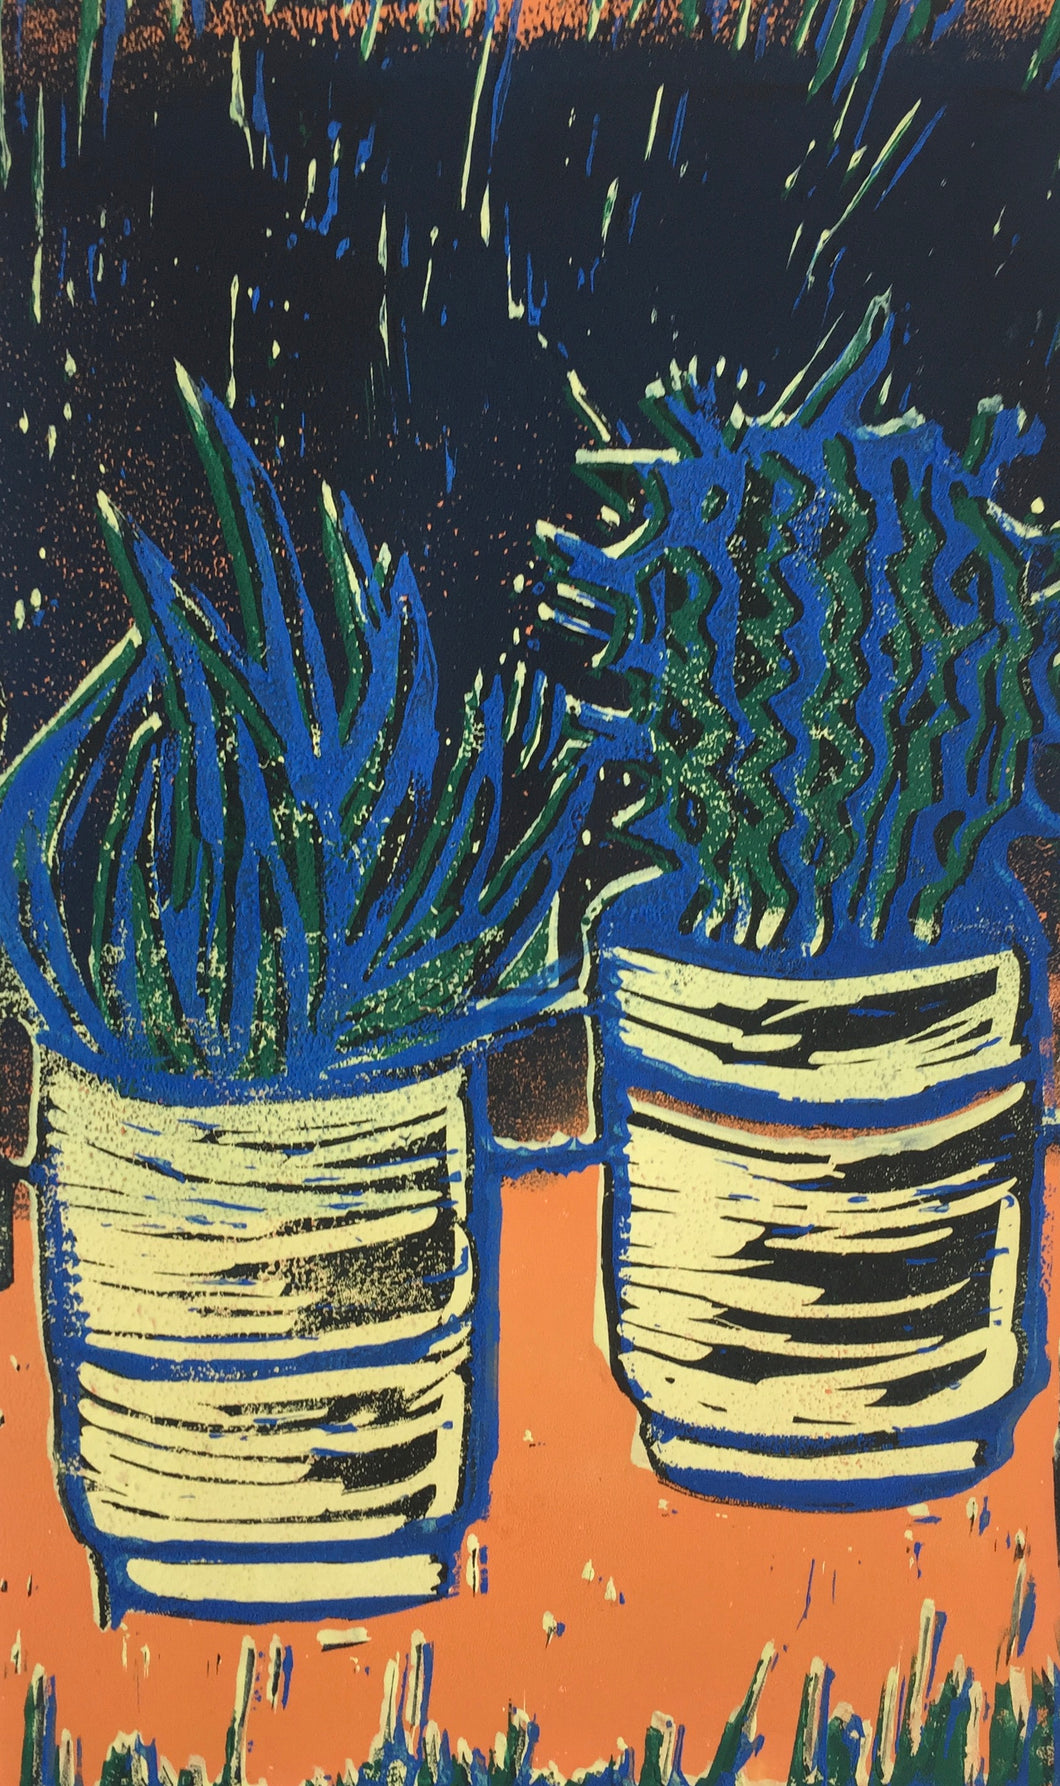 Cactus - potted plants II - blue & orange